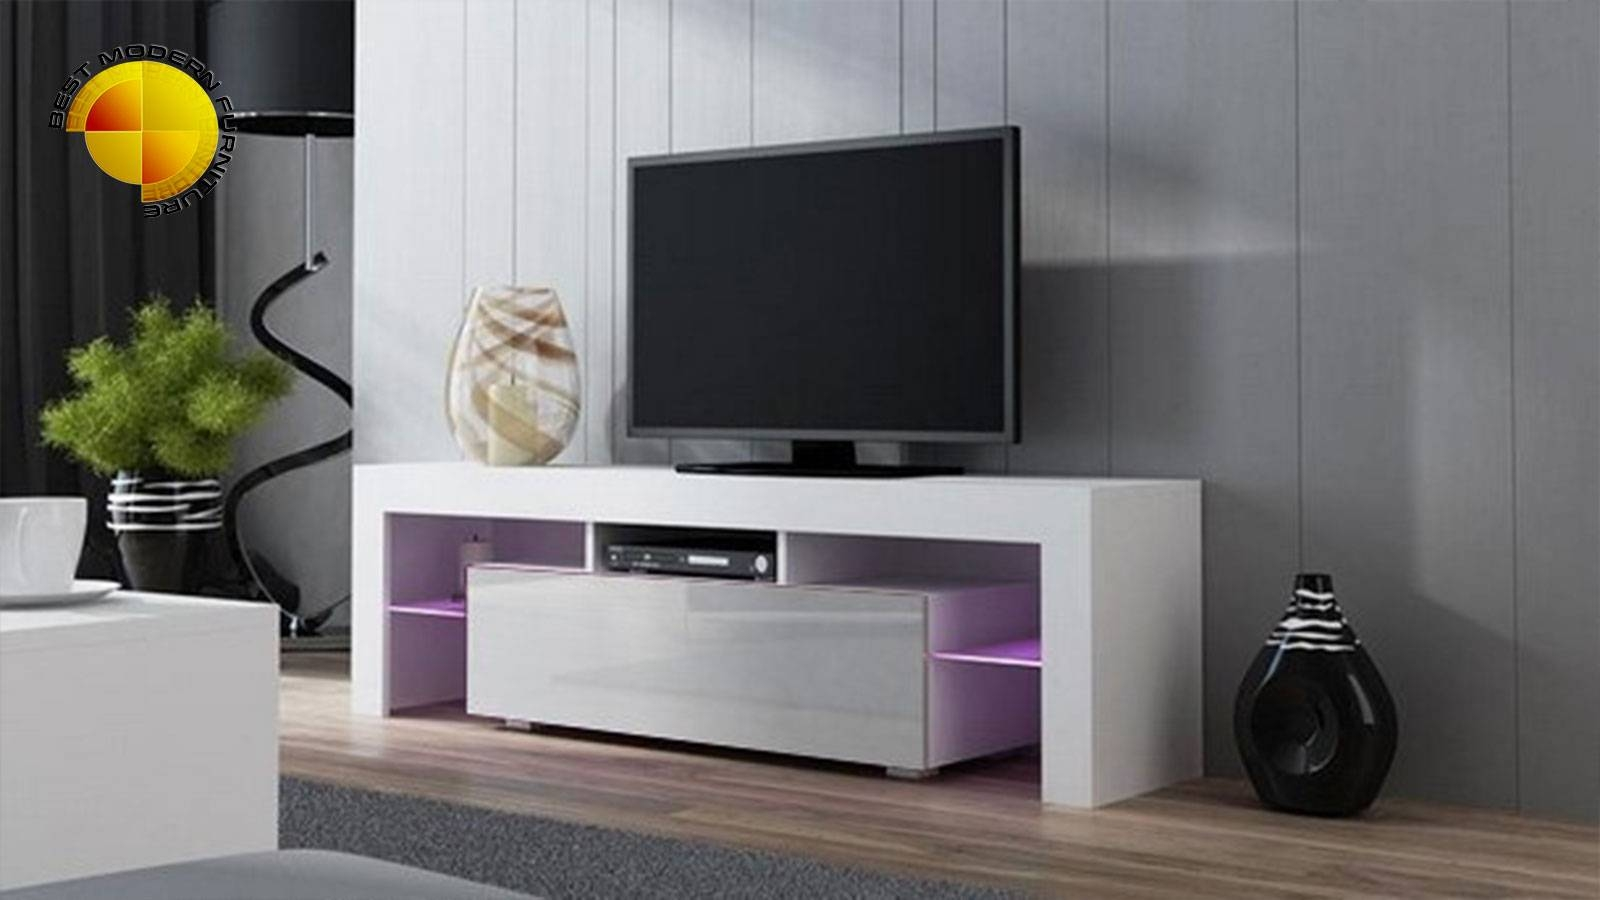 Modern Tv Stand 160cm High Gloss Cabinet Rgb Led Lights White Unit Regarding High Gloss White Tv Stands (View 8 of 15)